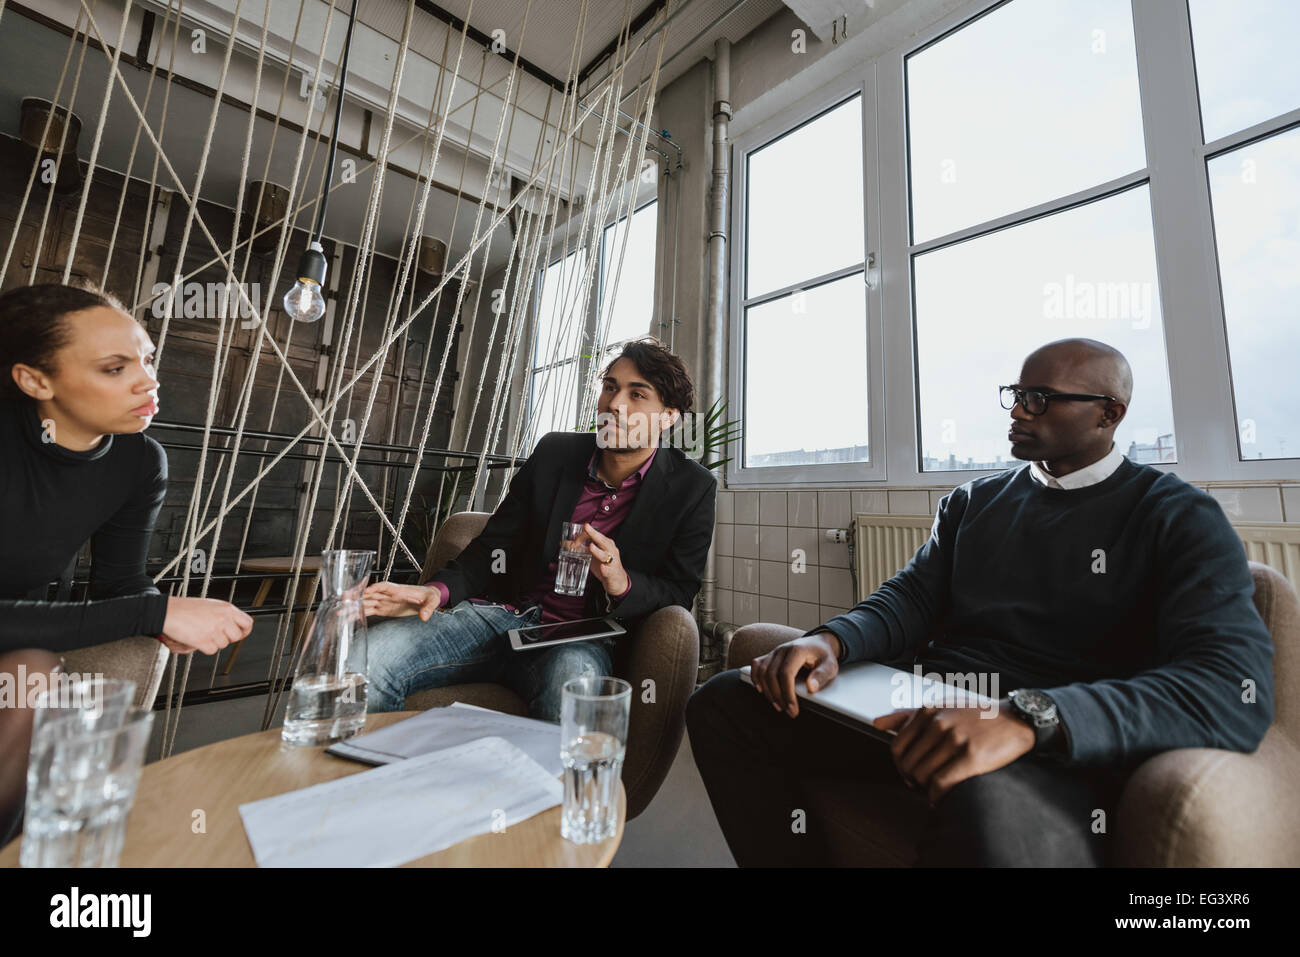 Group of multi ethnic executives discussing during a meeting in office lobby. Business people brainstorming ideas. - Stock Image